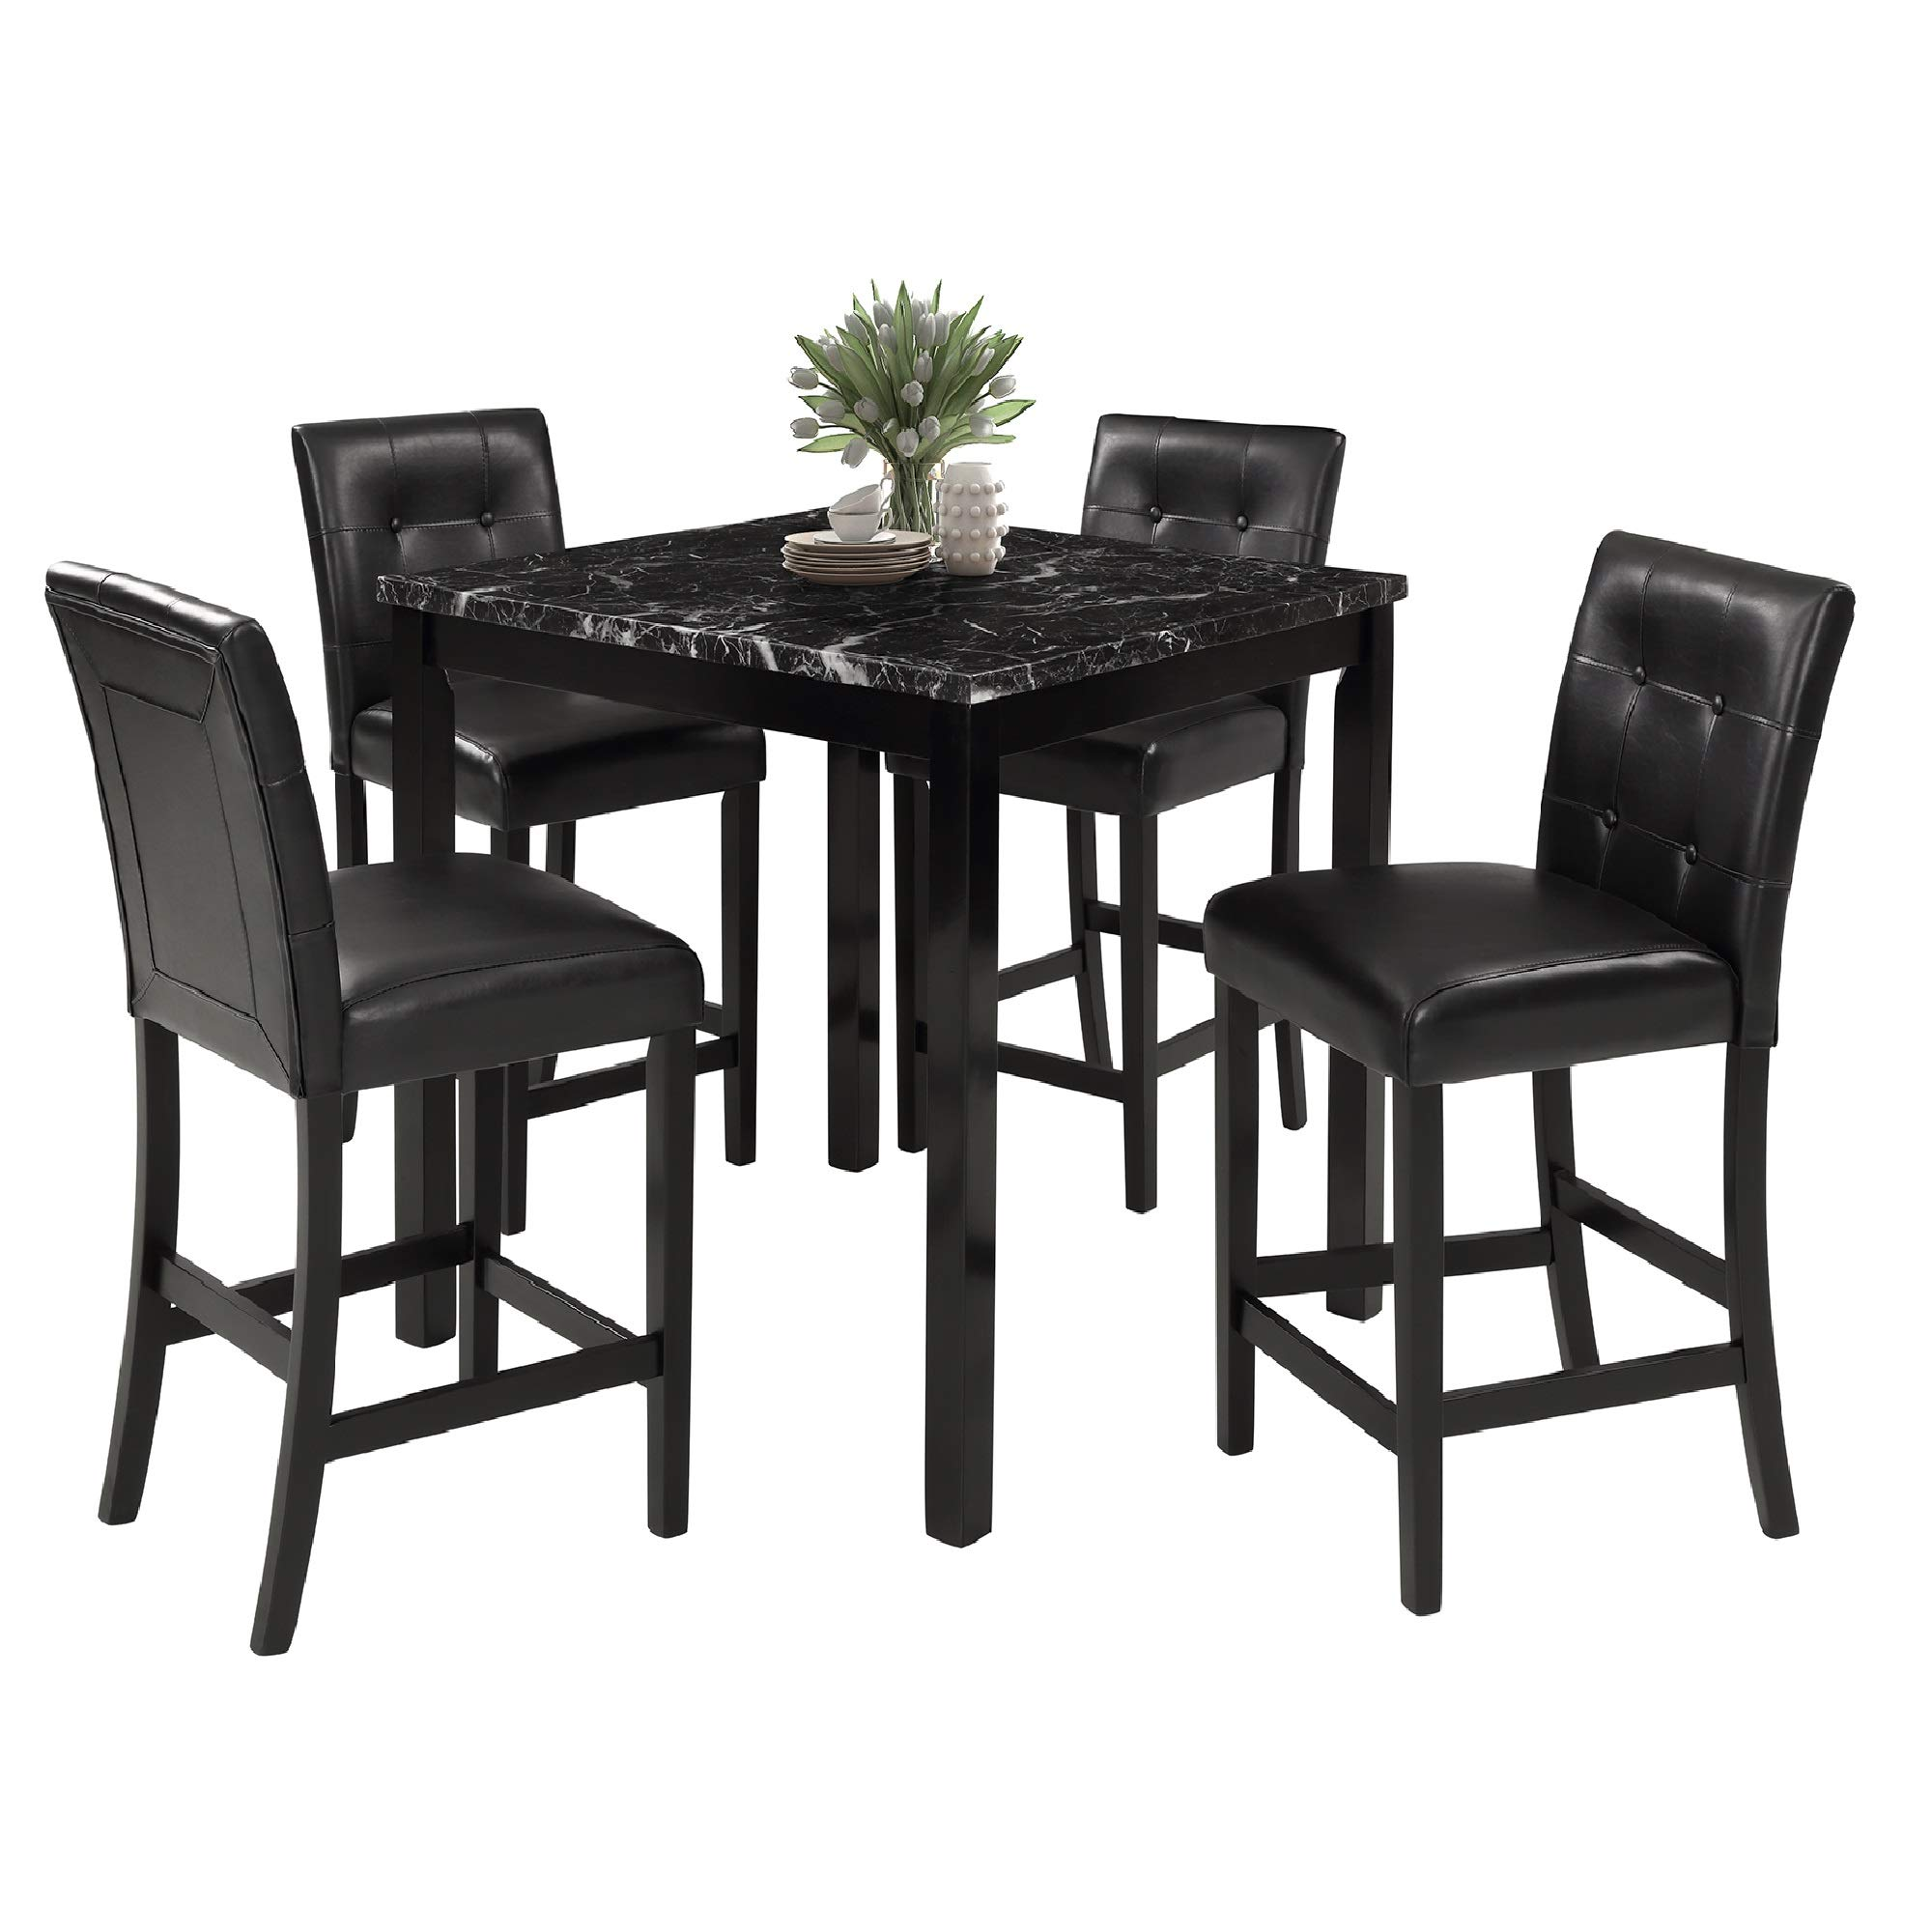 LZ LEISURE ZONE 5-Piece Kitchen Table Set Marble Top Counter Height Dining Table Set with 4 Leather-Upholstered Chairs (Marble)